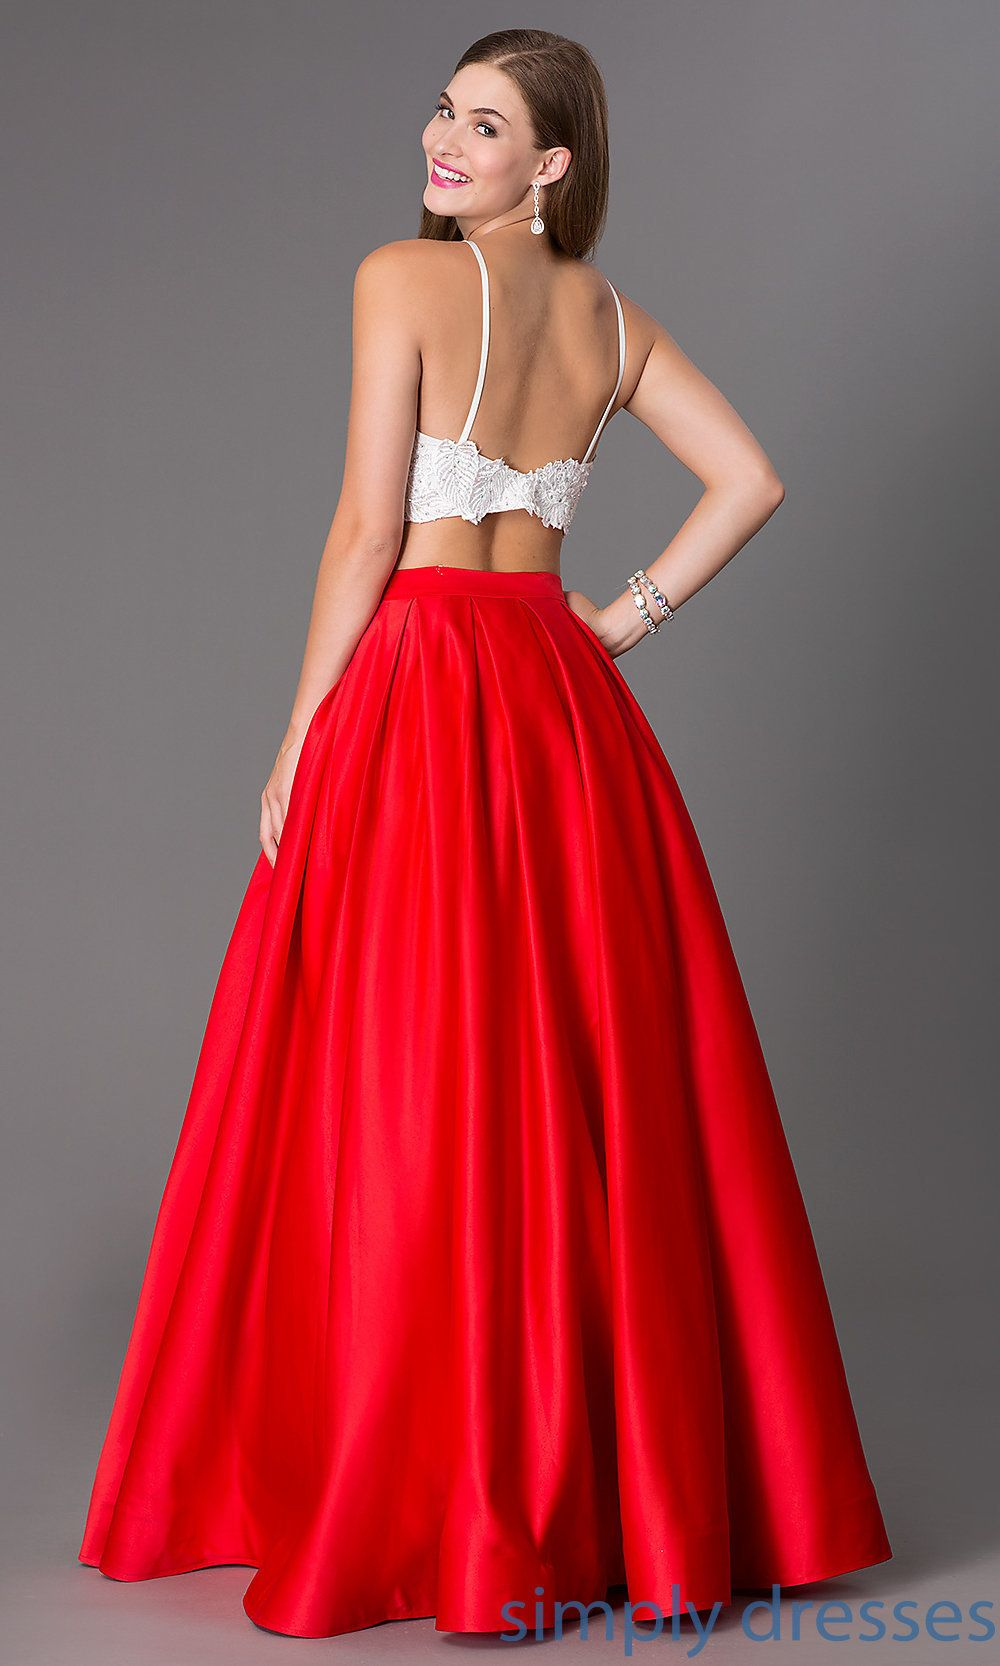 DJ-1435 - Two-Piece Ivory Lace-Top Ball Gown | Shops, Prom dresses ...